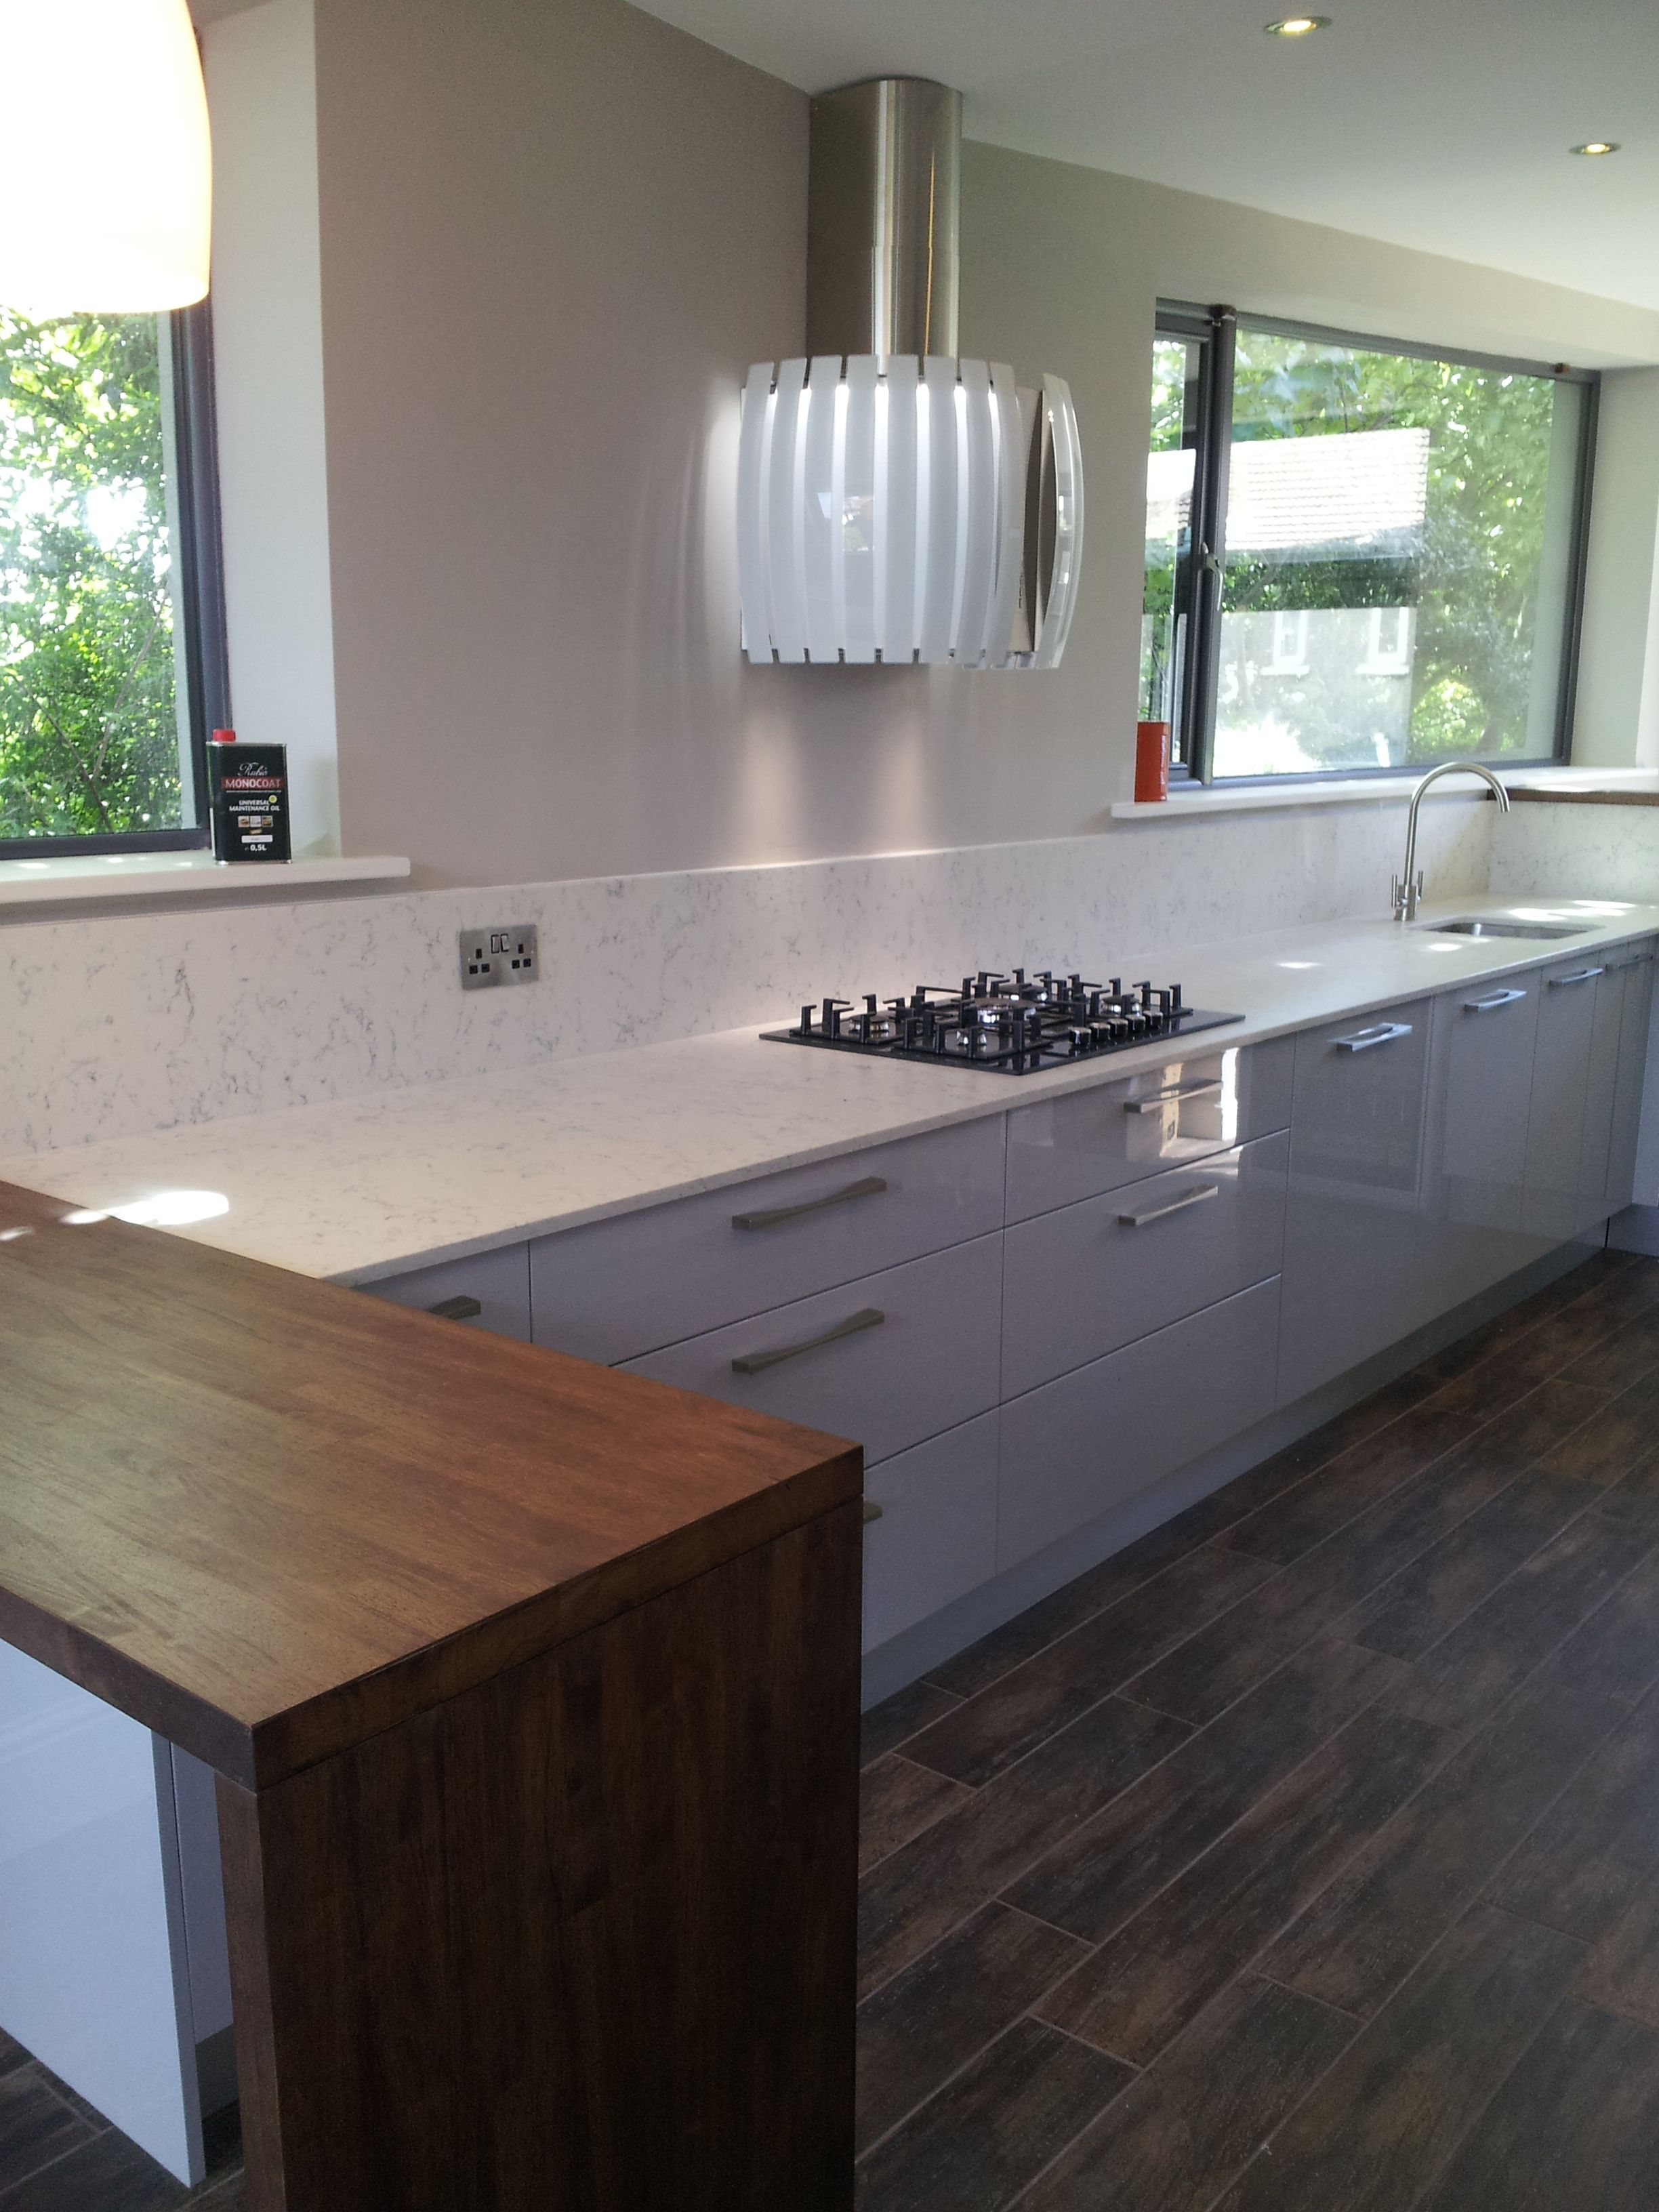 Silestone Lagoon with Solid oak stained Kitchen design